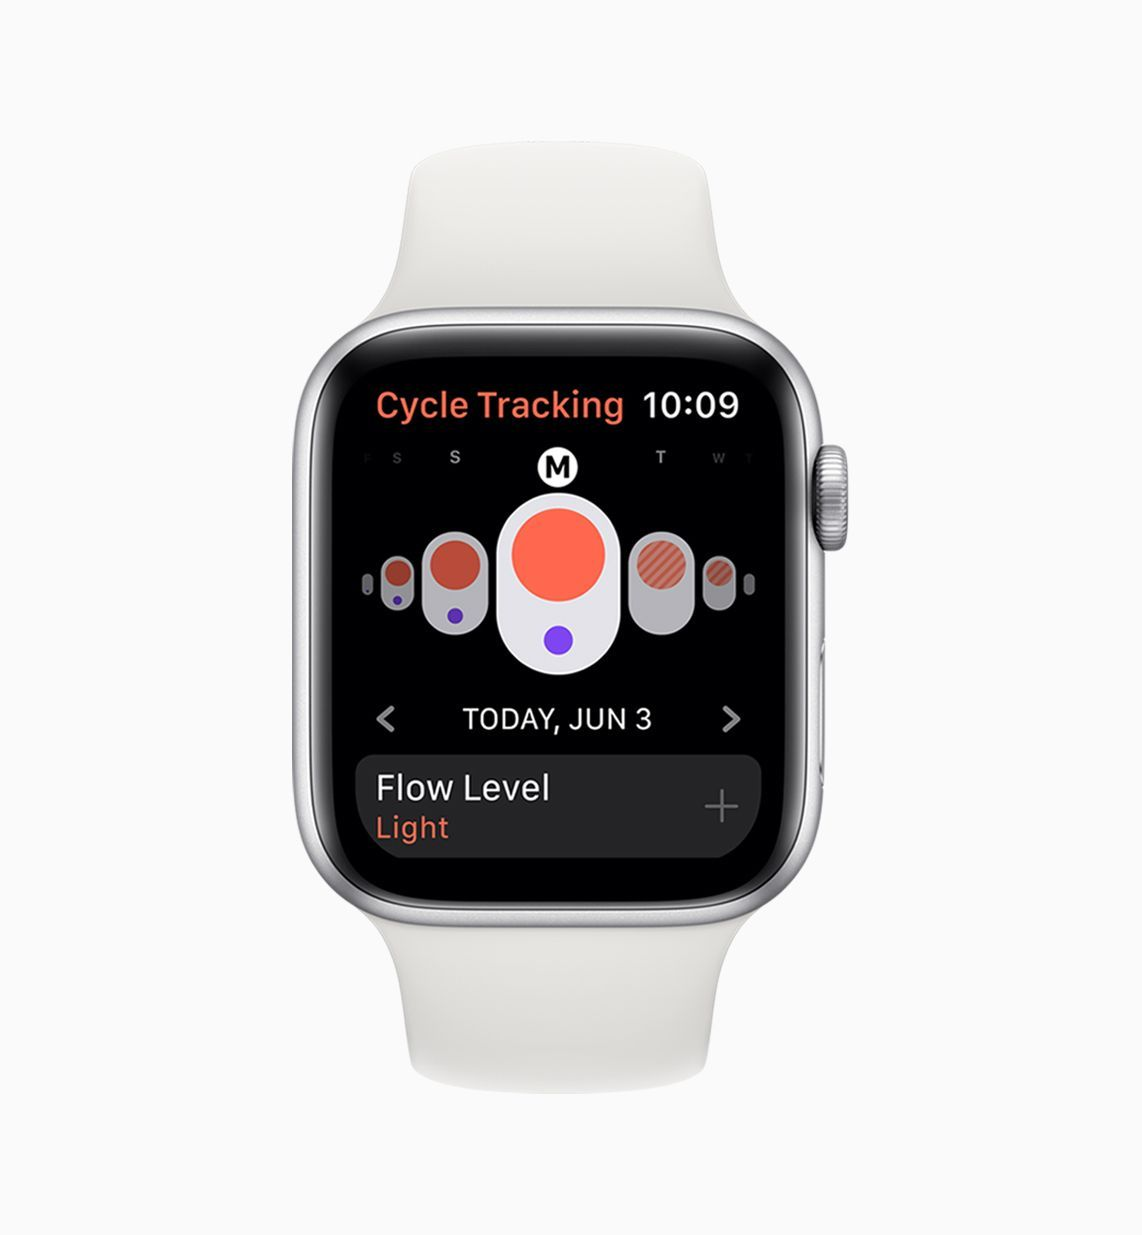 The Apple Watch Can Now Track Your Period Cycle tracking